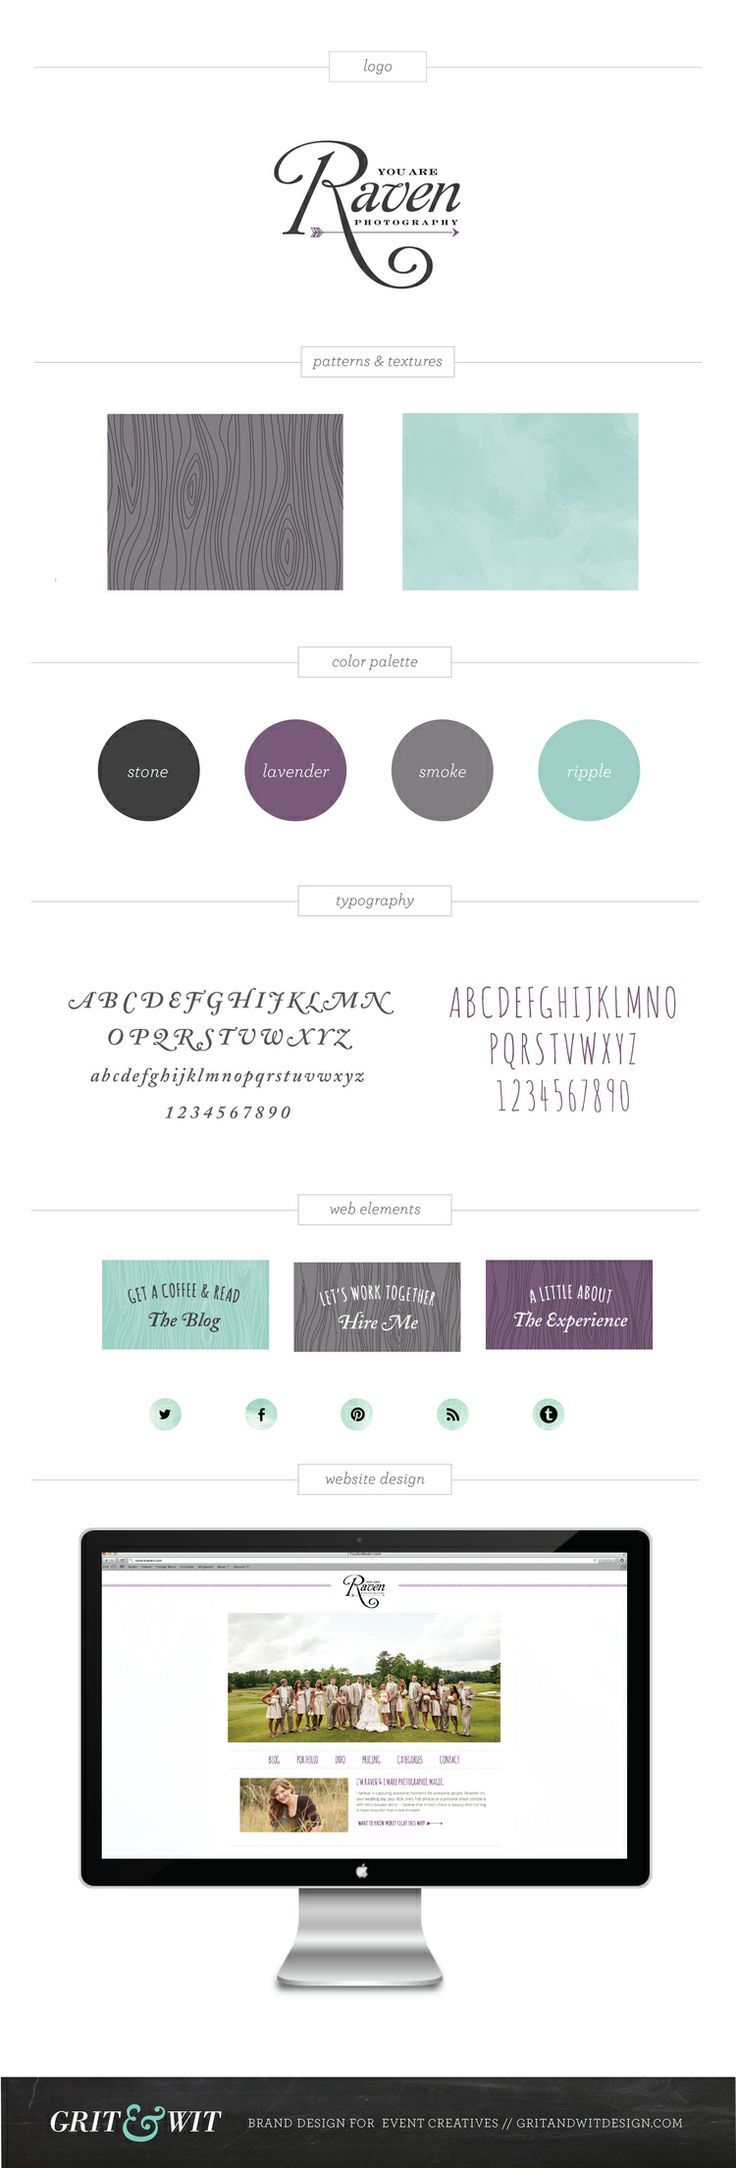 Brand Reveal // You Are Raven Photography via Grit & Wit // Brand Design for Creative Professionals